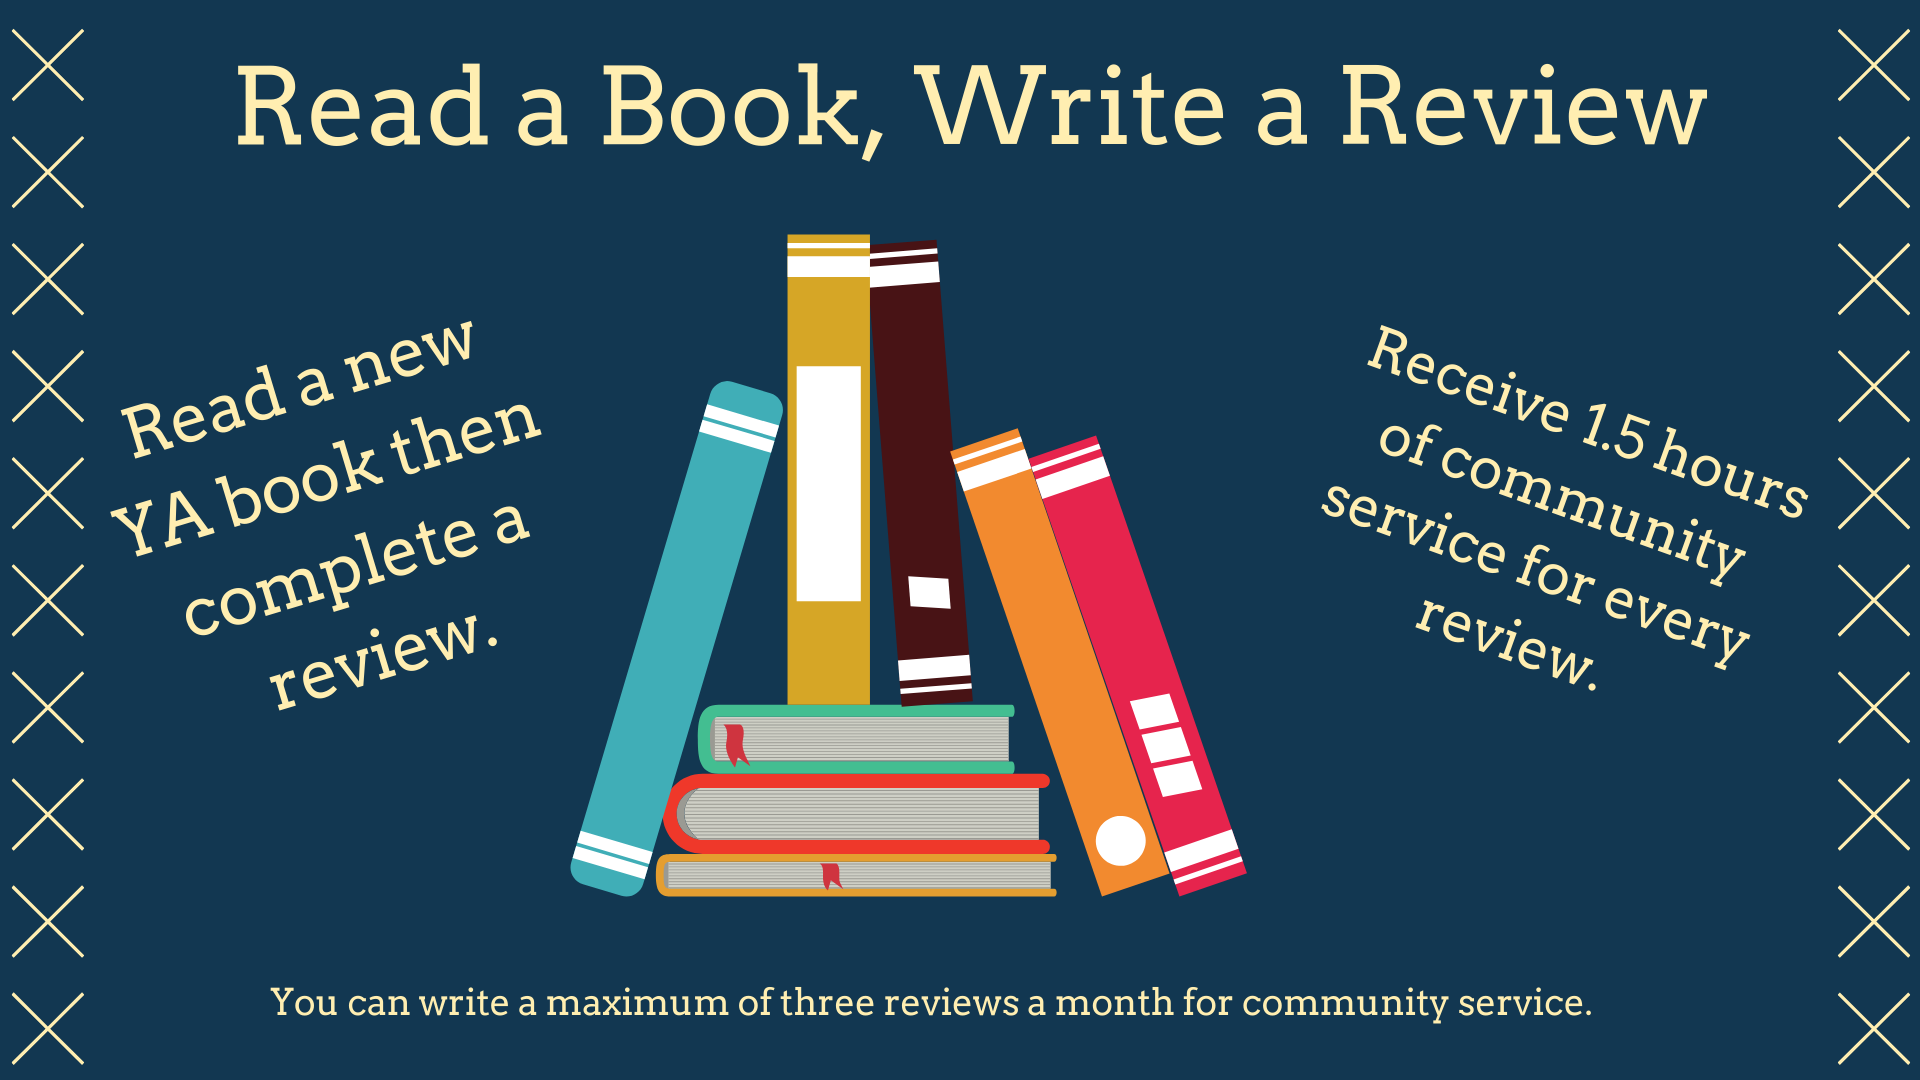 Copy of Book Reviews